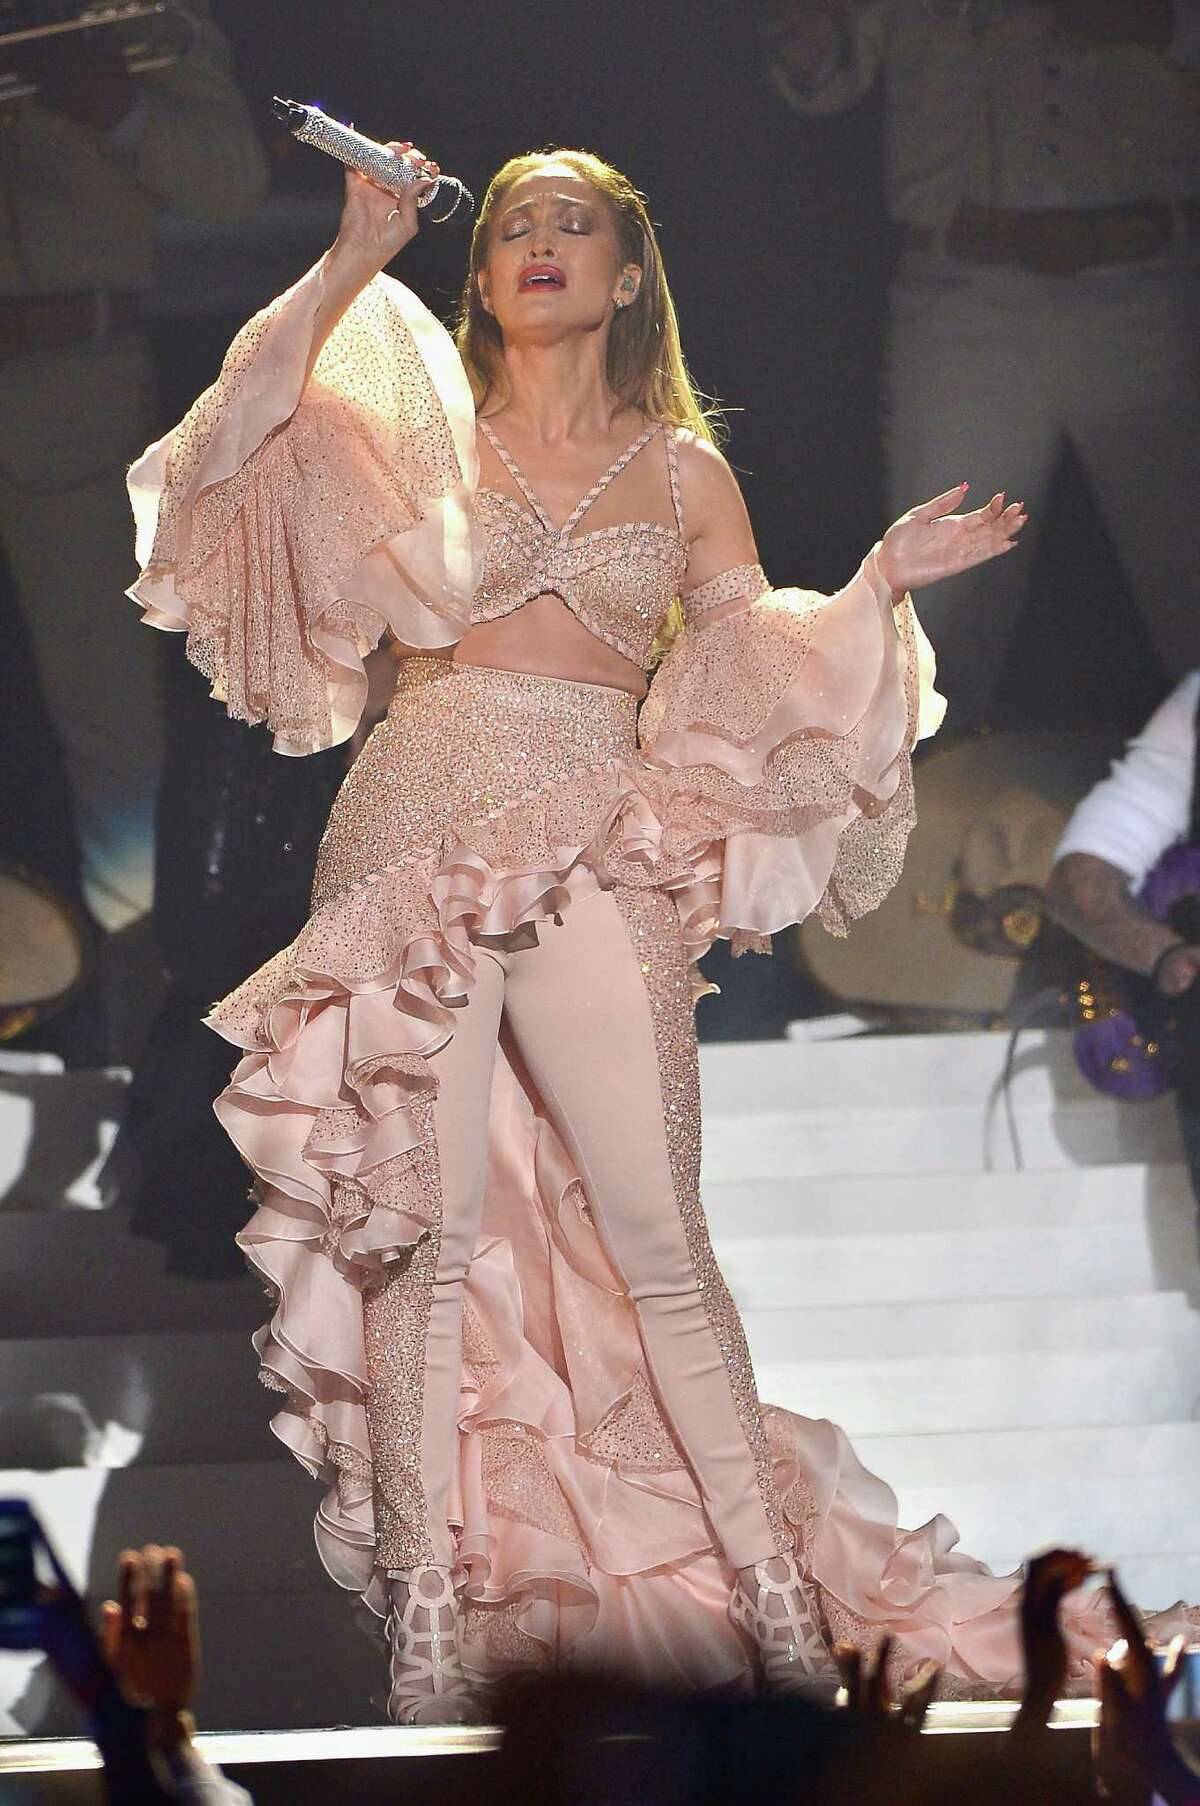 Jennifer Lopez performs musical tribute to Selena performs onstage at the 2015 Billboard Latin Music Awards presented bu State Farm on Telemundo at Bank United Center on April 30, 2015 in Miami, Florida.